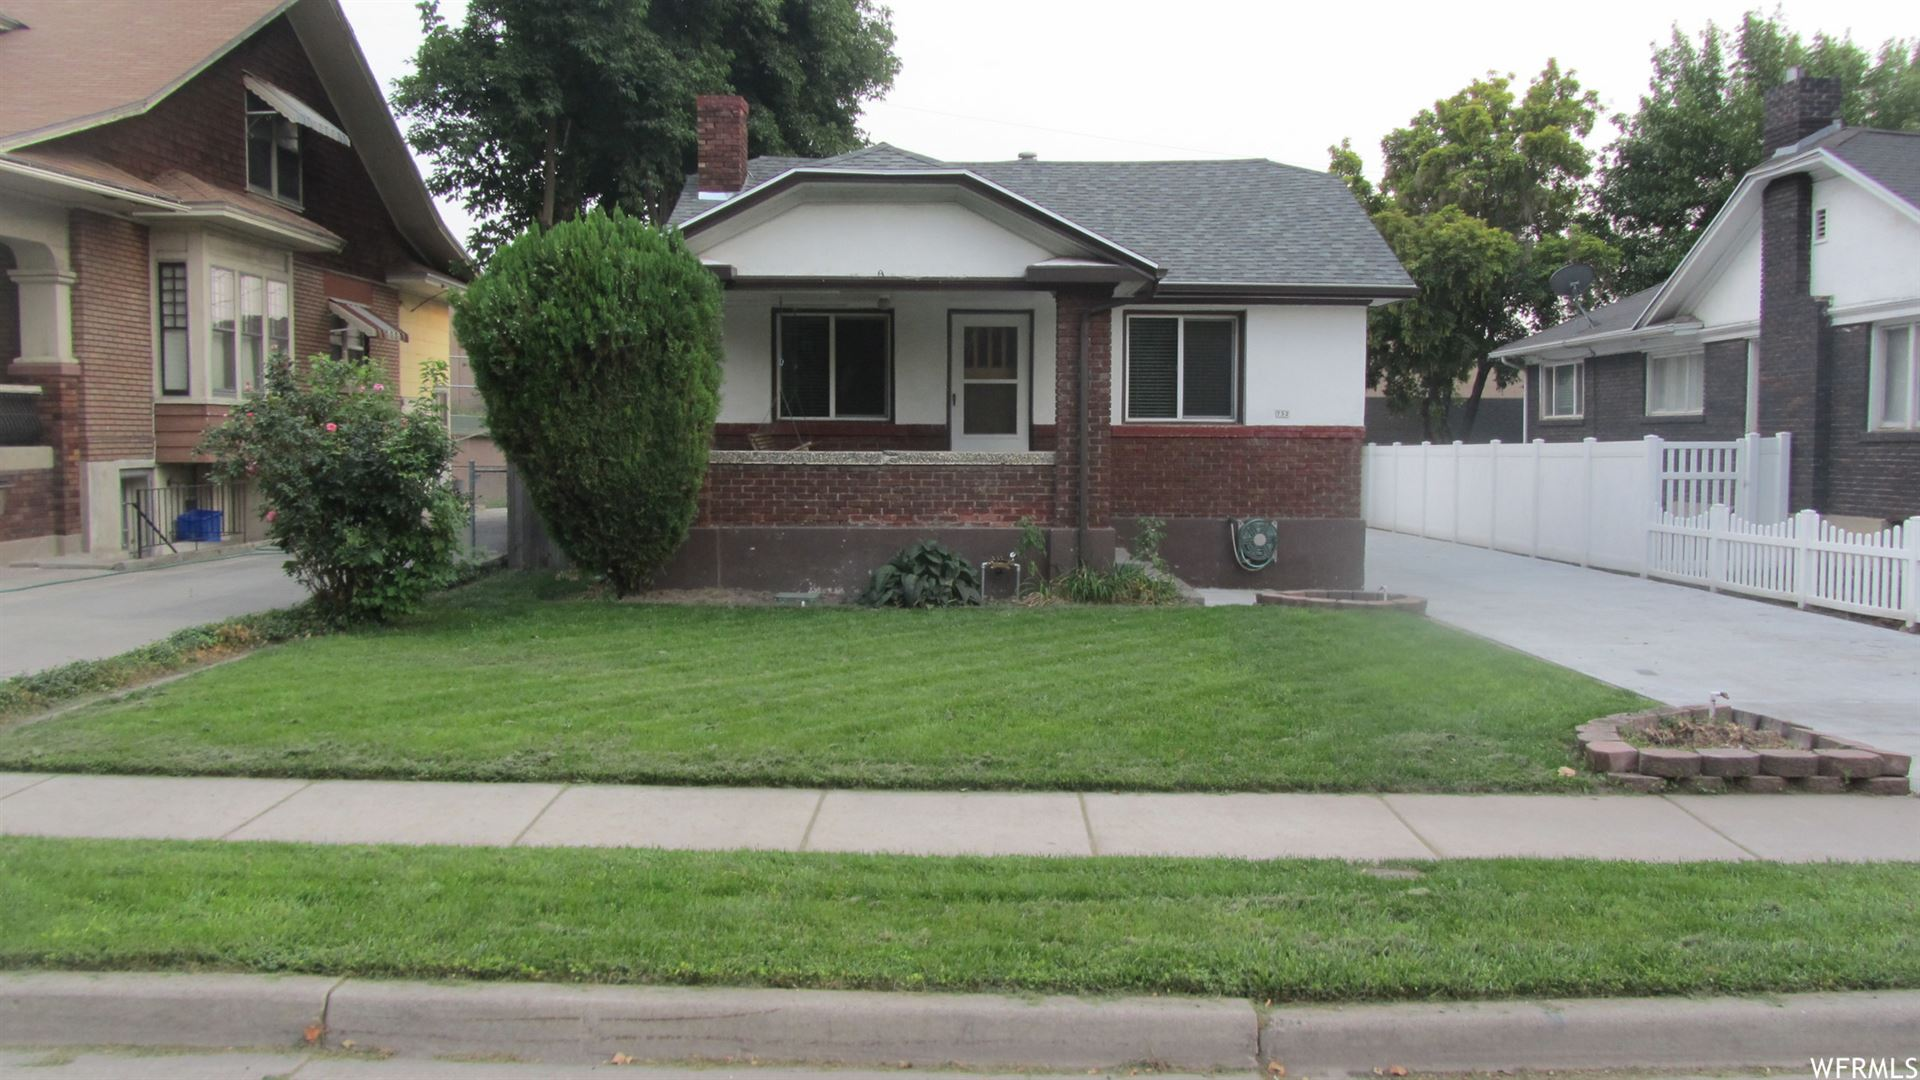 Photo of 752 E ASHTON AVE, Salt Lake City, UT 84106 (MLS # 1718148)